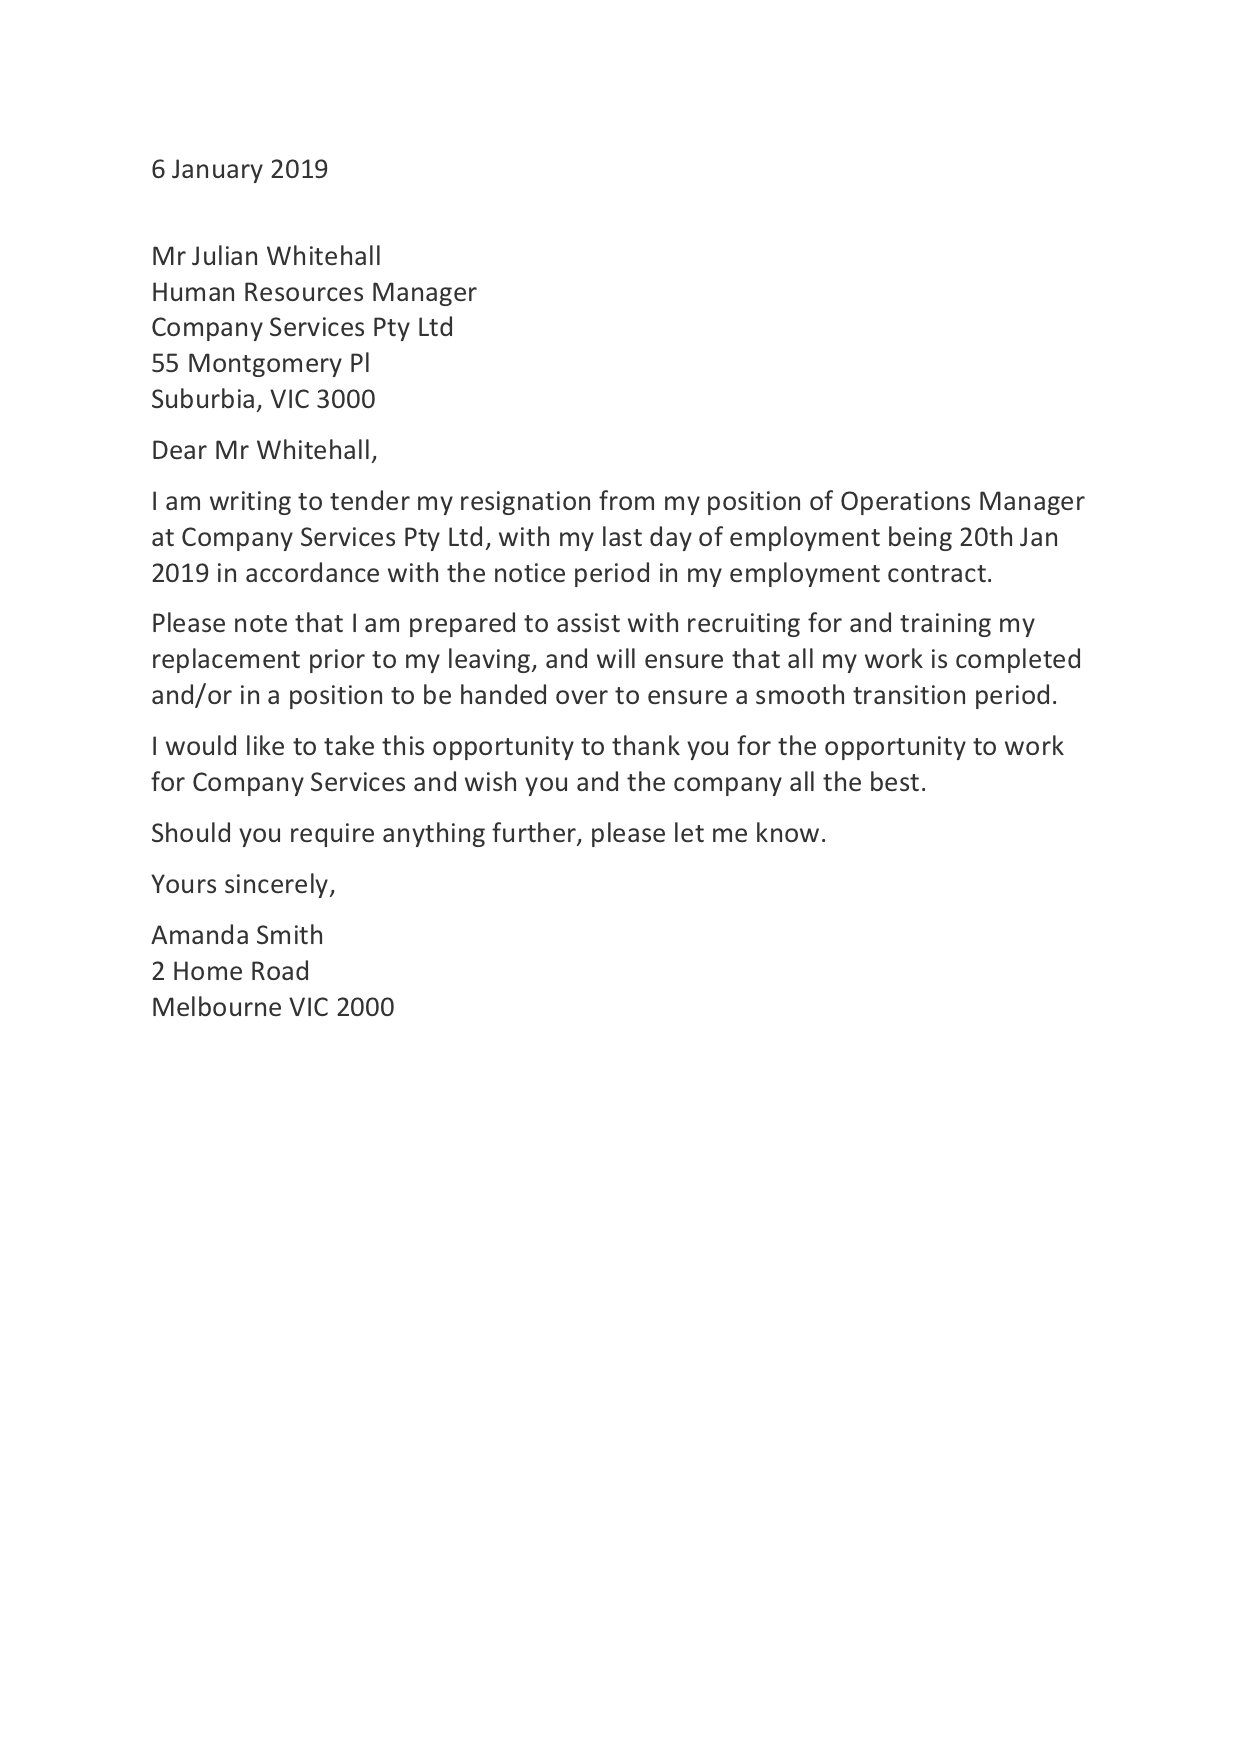 Resignation Letter Templates: How to Write a Resignation ...